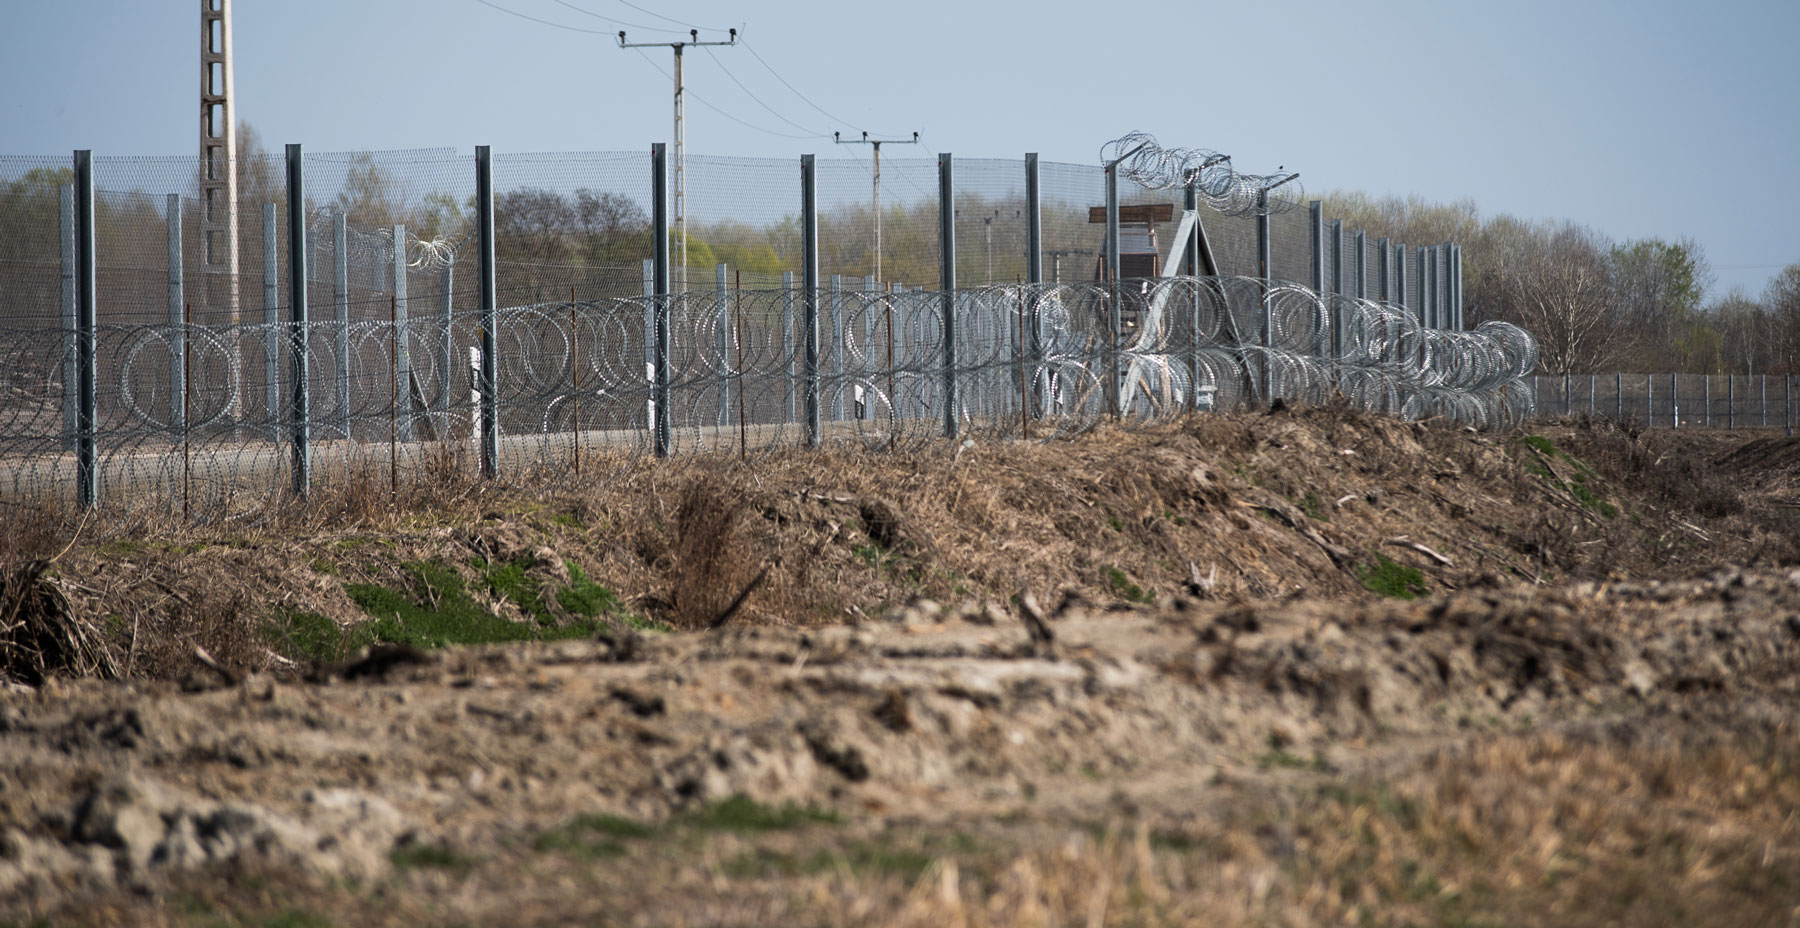 A fence on the Serbia-Hungary border. (Photo: Omar Marques via Getty Images)